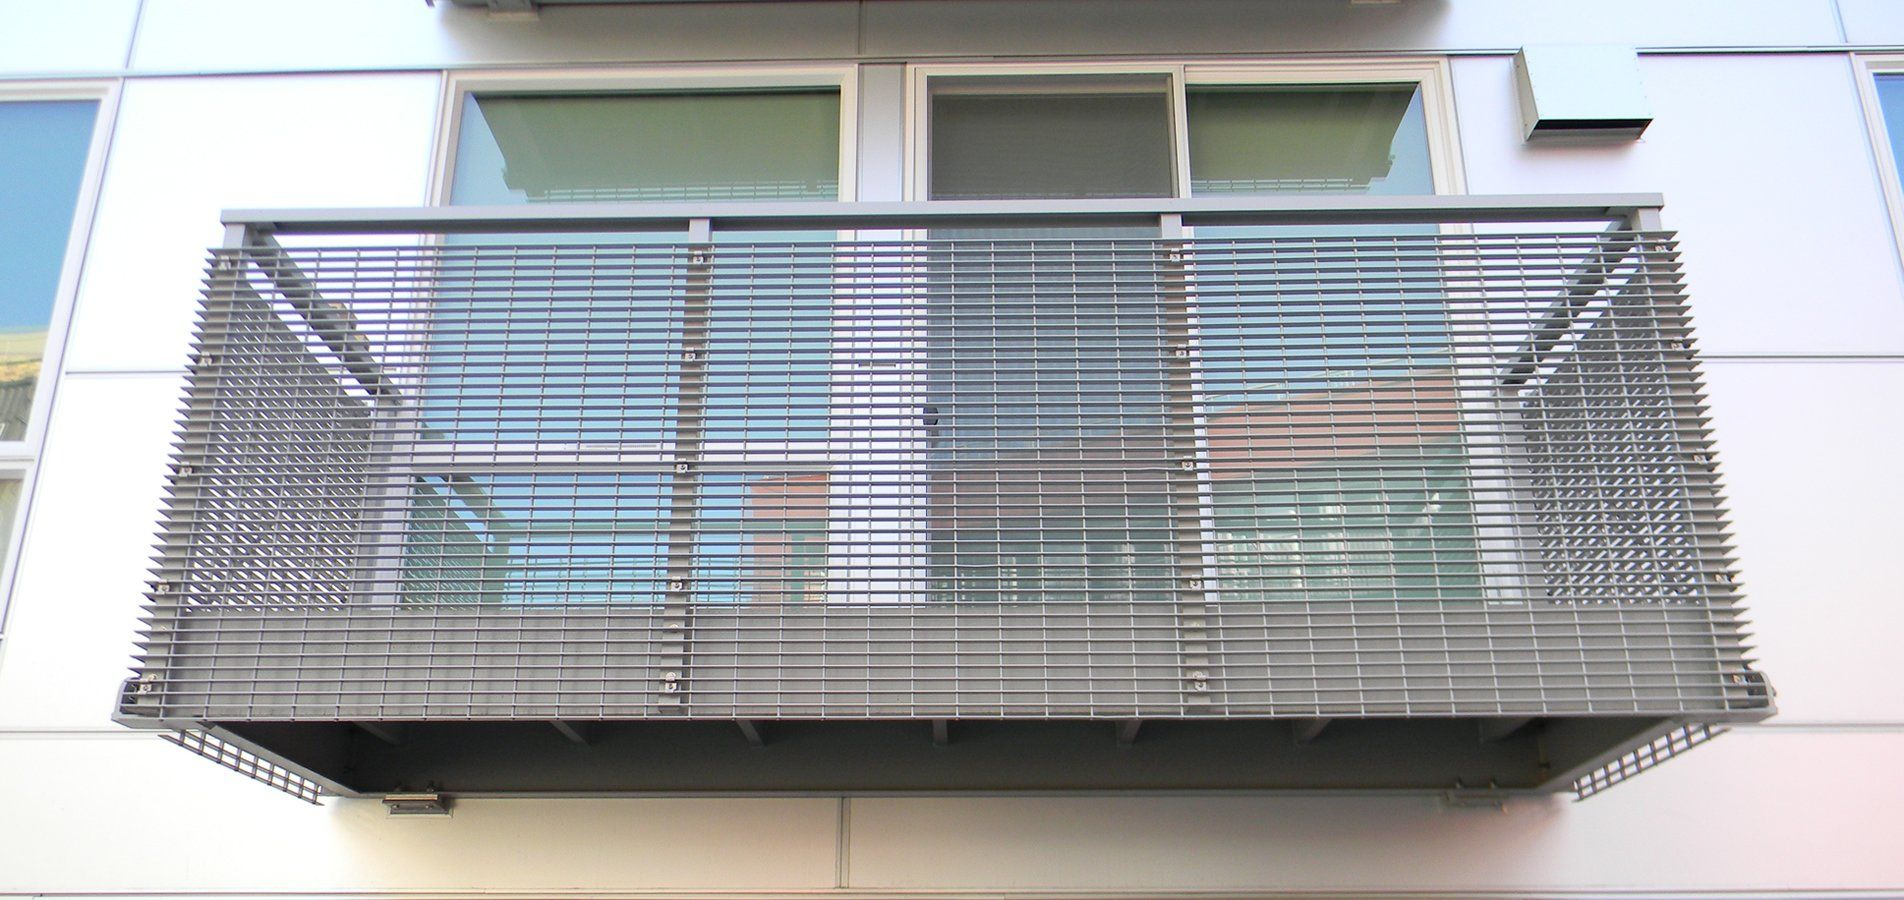 Images balconies with perforated metal google search for Balcony covering nets